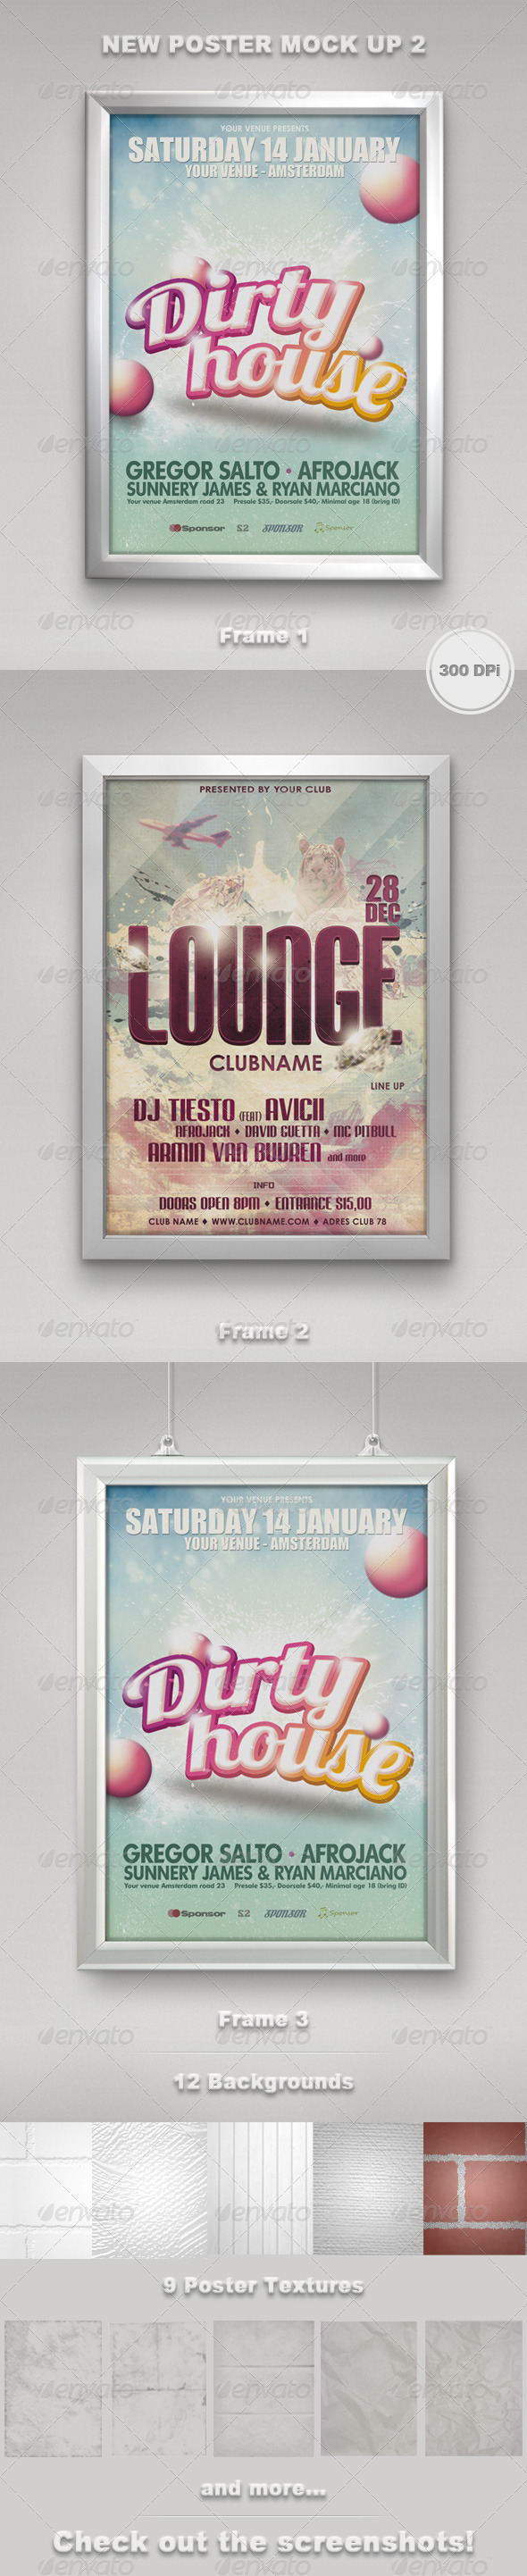 New Poster Mock Up 2 - Posters Print